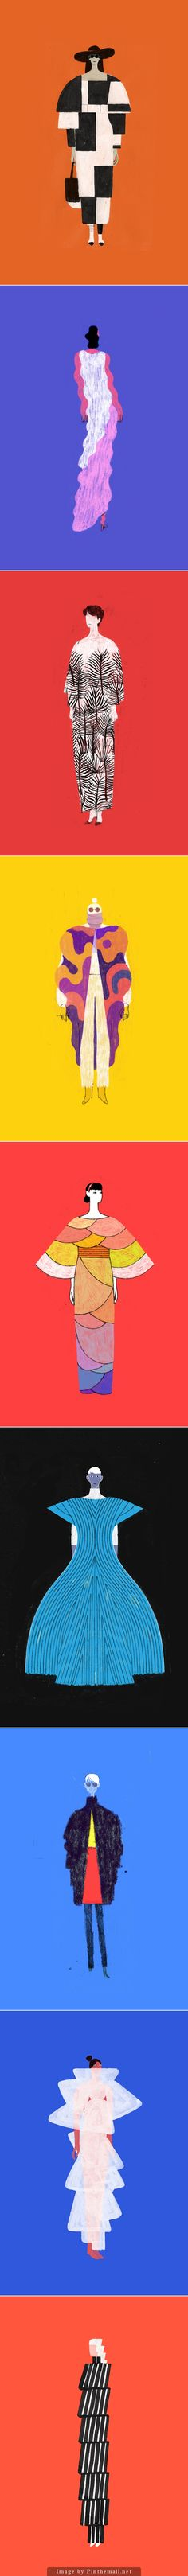 'I Don't Like Clothes' - Ongoing series of fashion illustrations by Dadu Shin